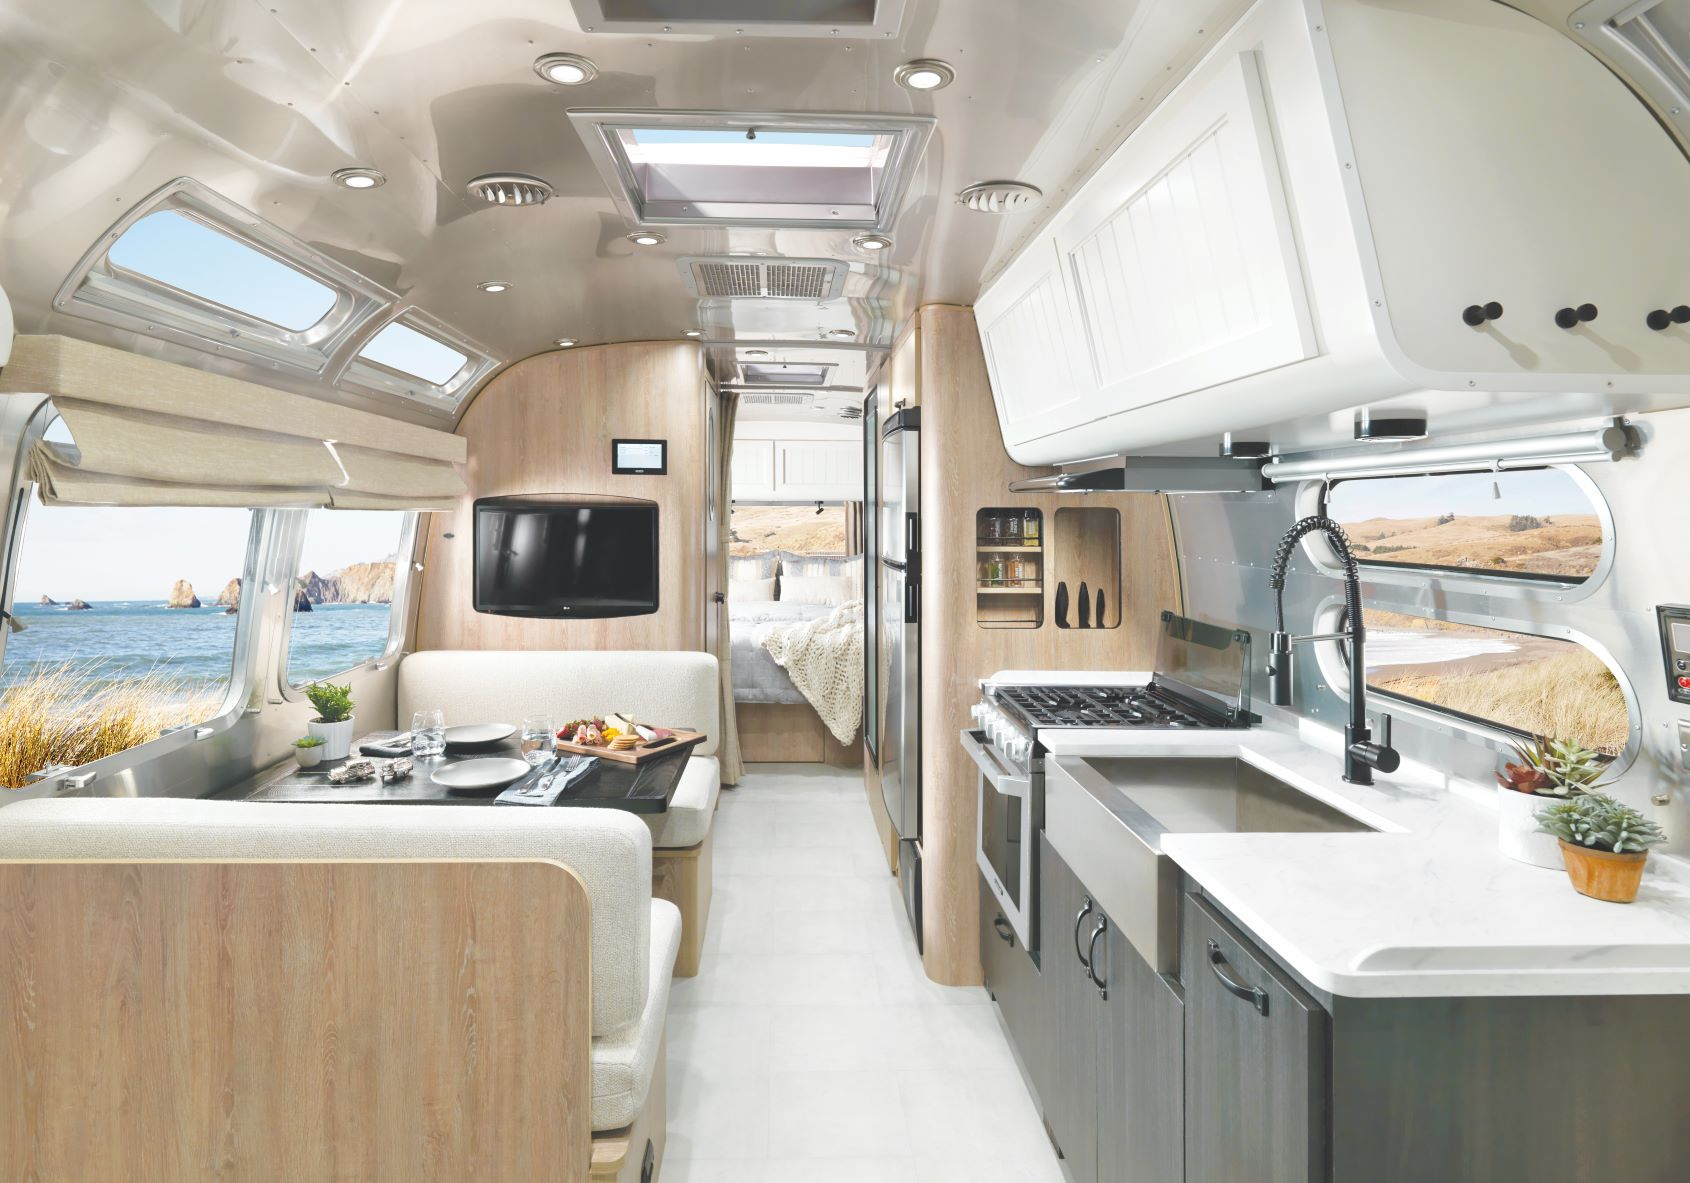 The Airstream galley